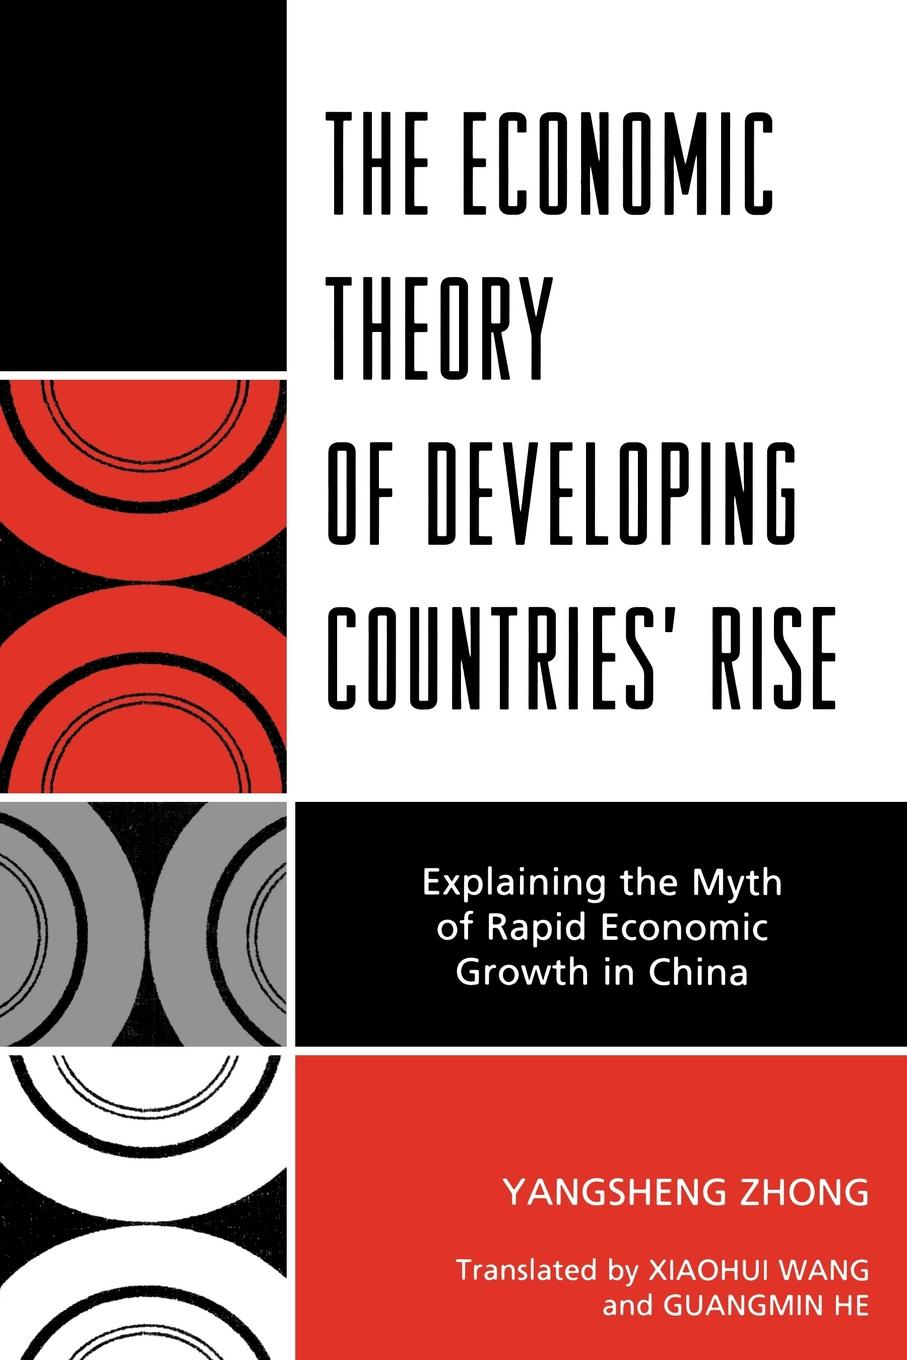 The Economic Theory of Developing Countries' Rise Explaining the Myth of Rapid Economic Growth in China